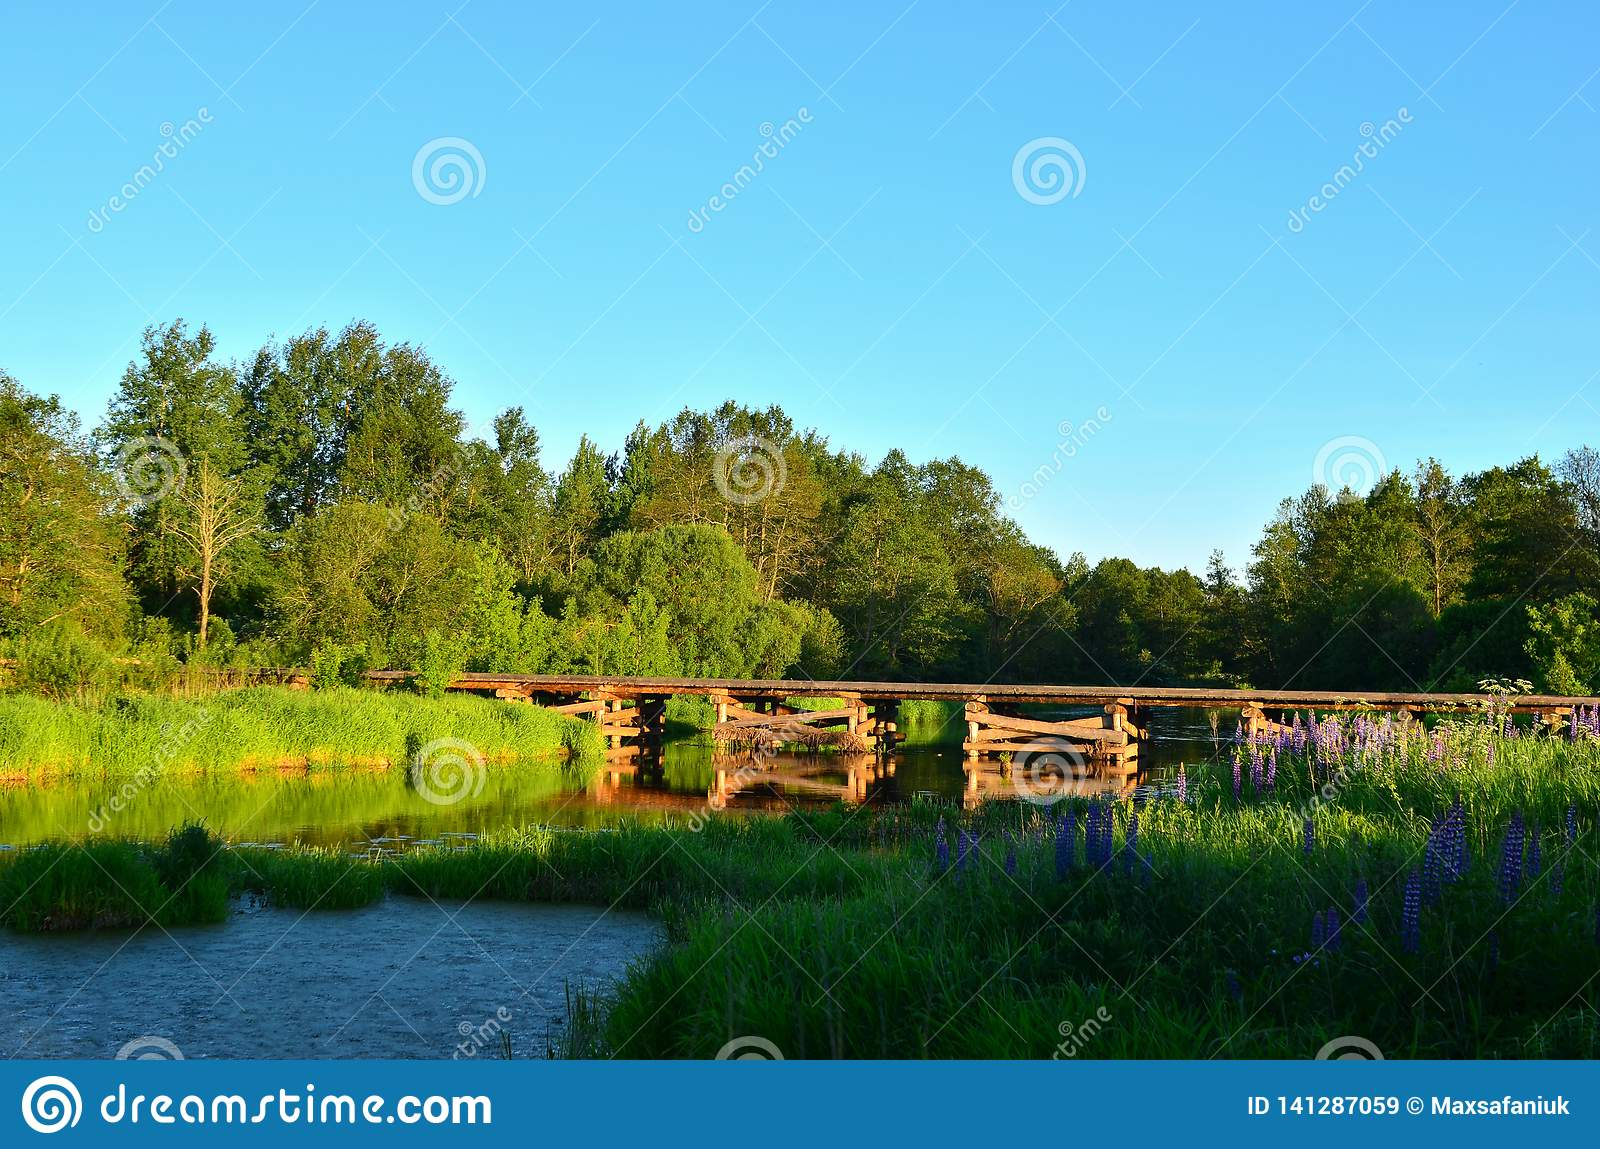 A wooden bridge of tree logs lies across a small river inside a wooded area among green nature